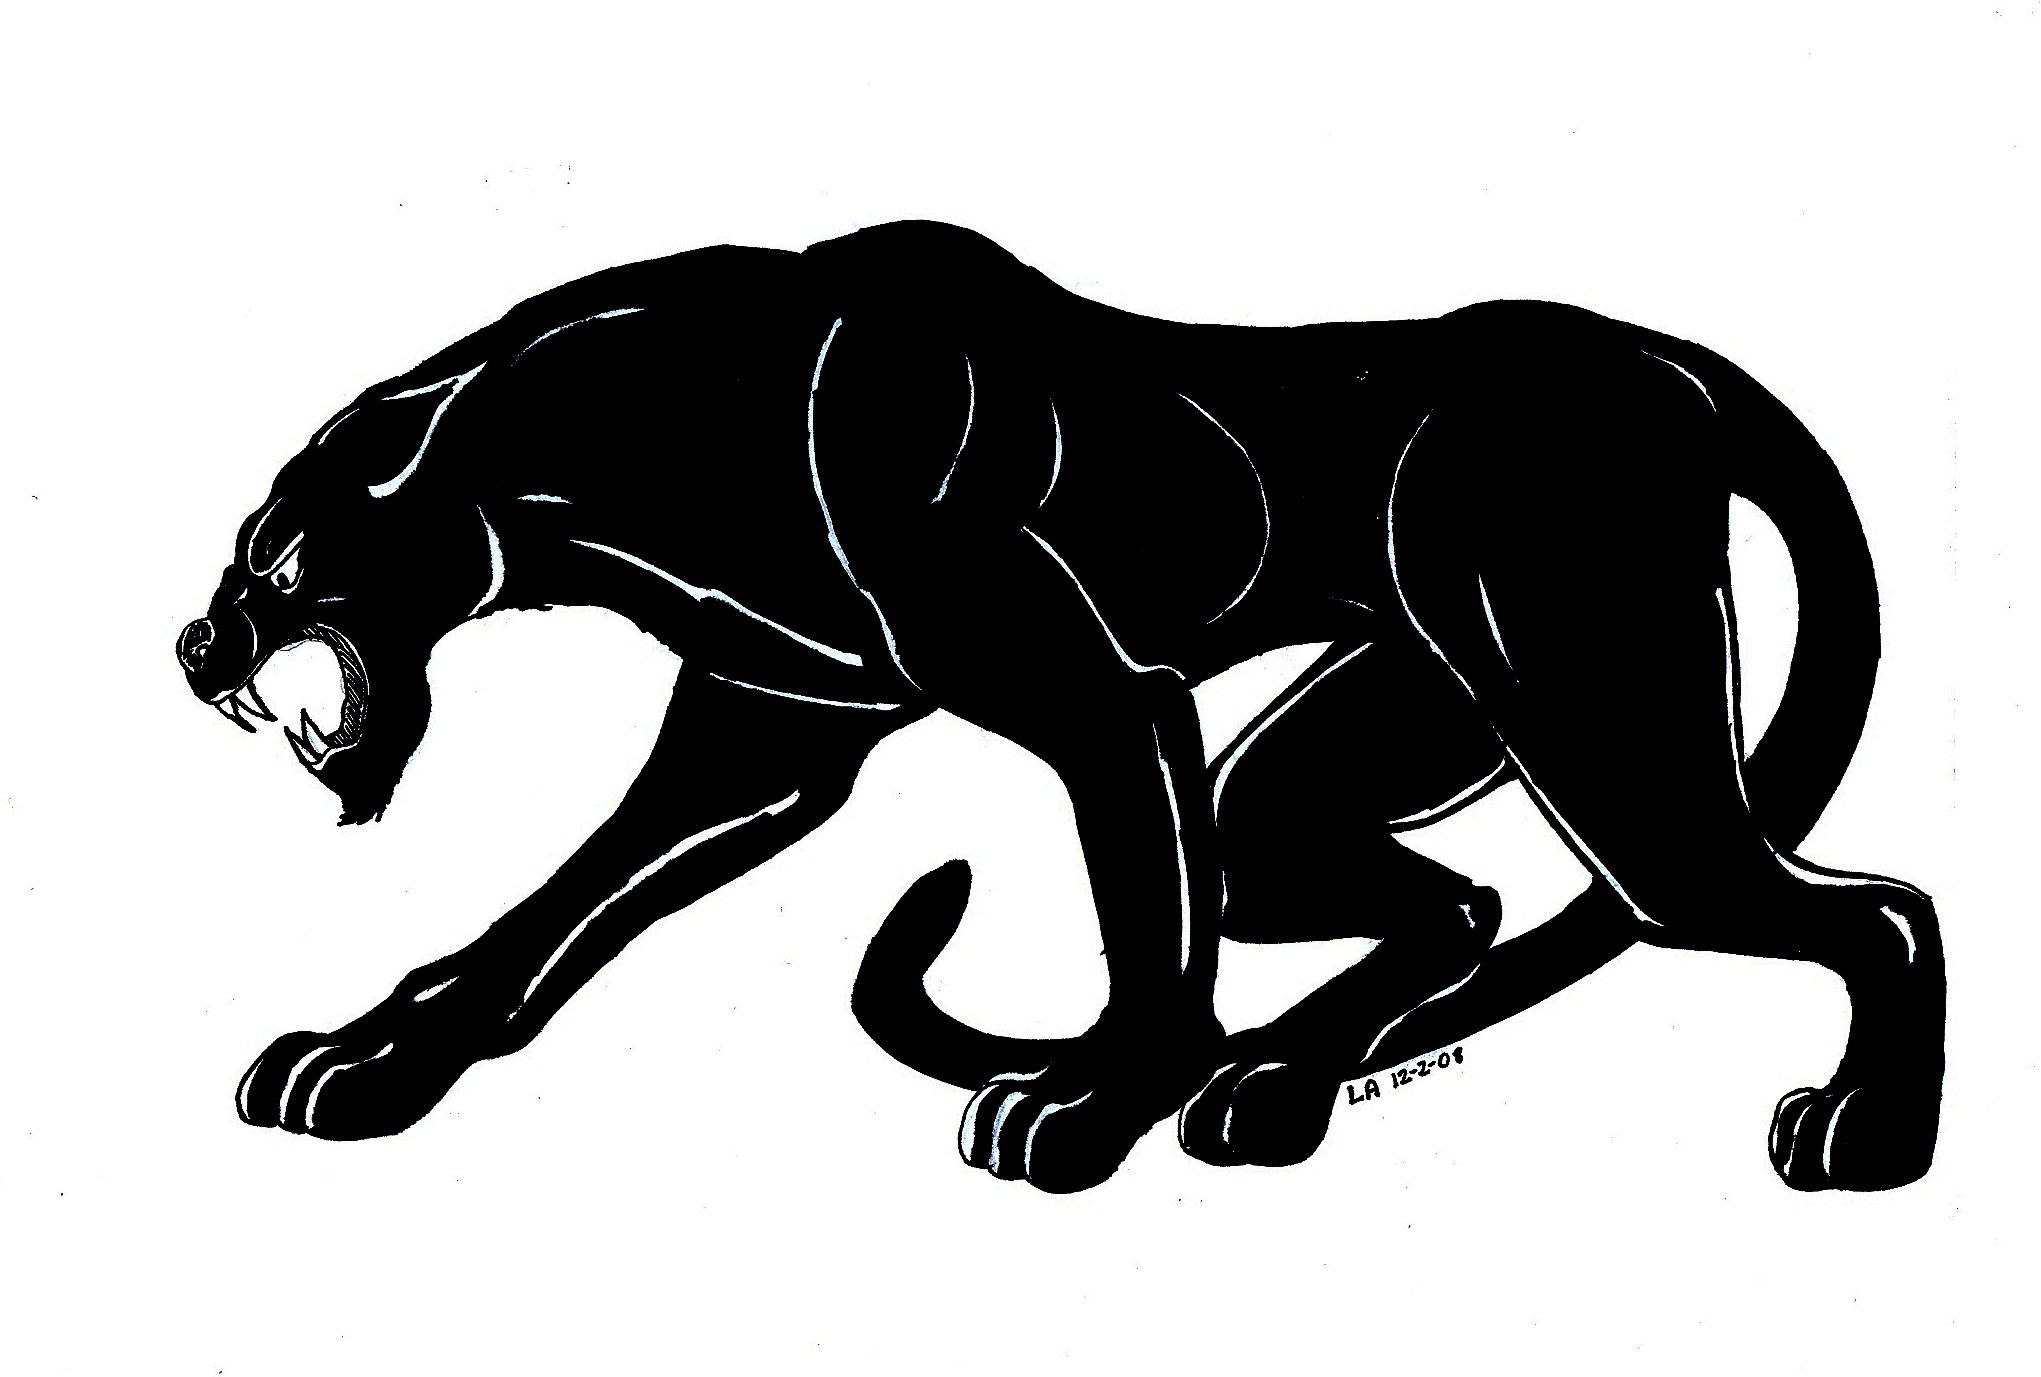 2041x1377 panther ideas black panther drawing, black panther, black